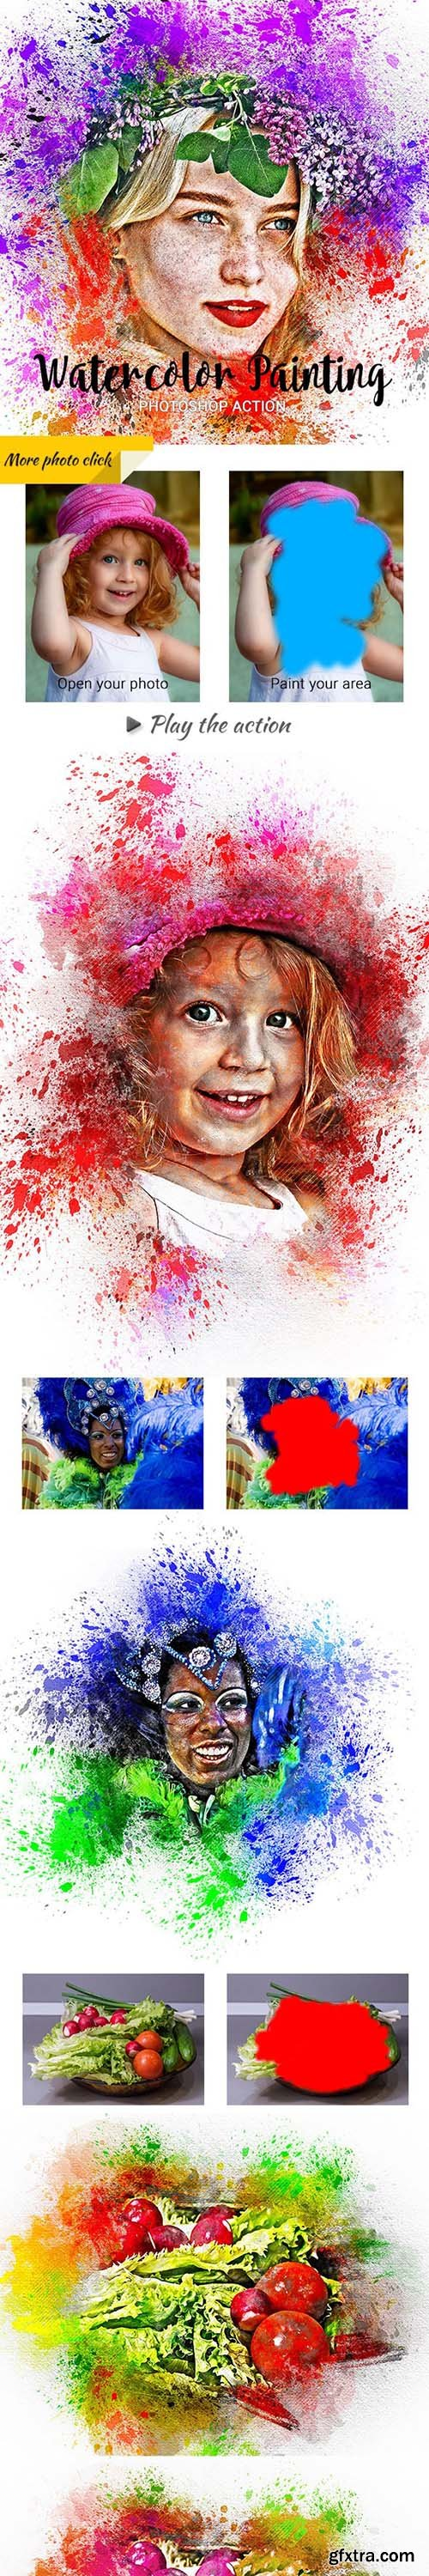 GraphicRiver - Watercolor Painting Photoshop Action 24202737